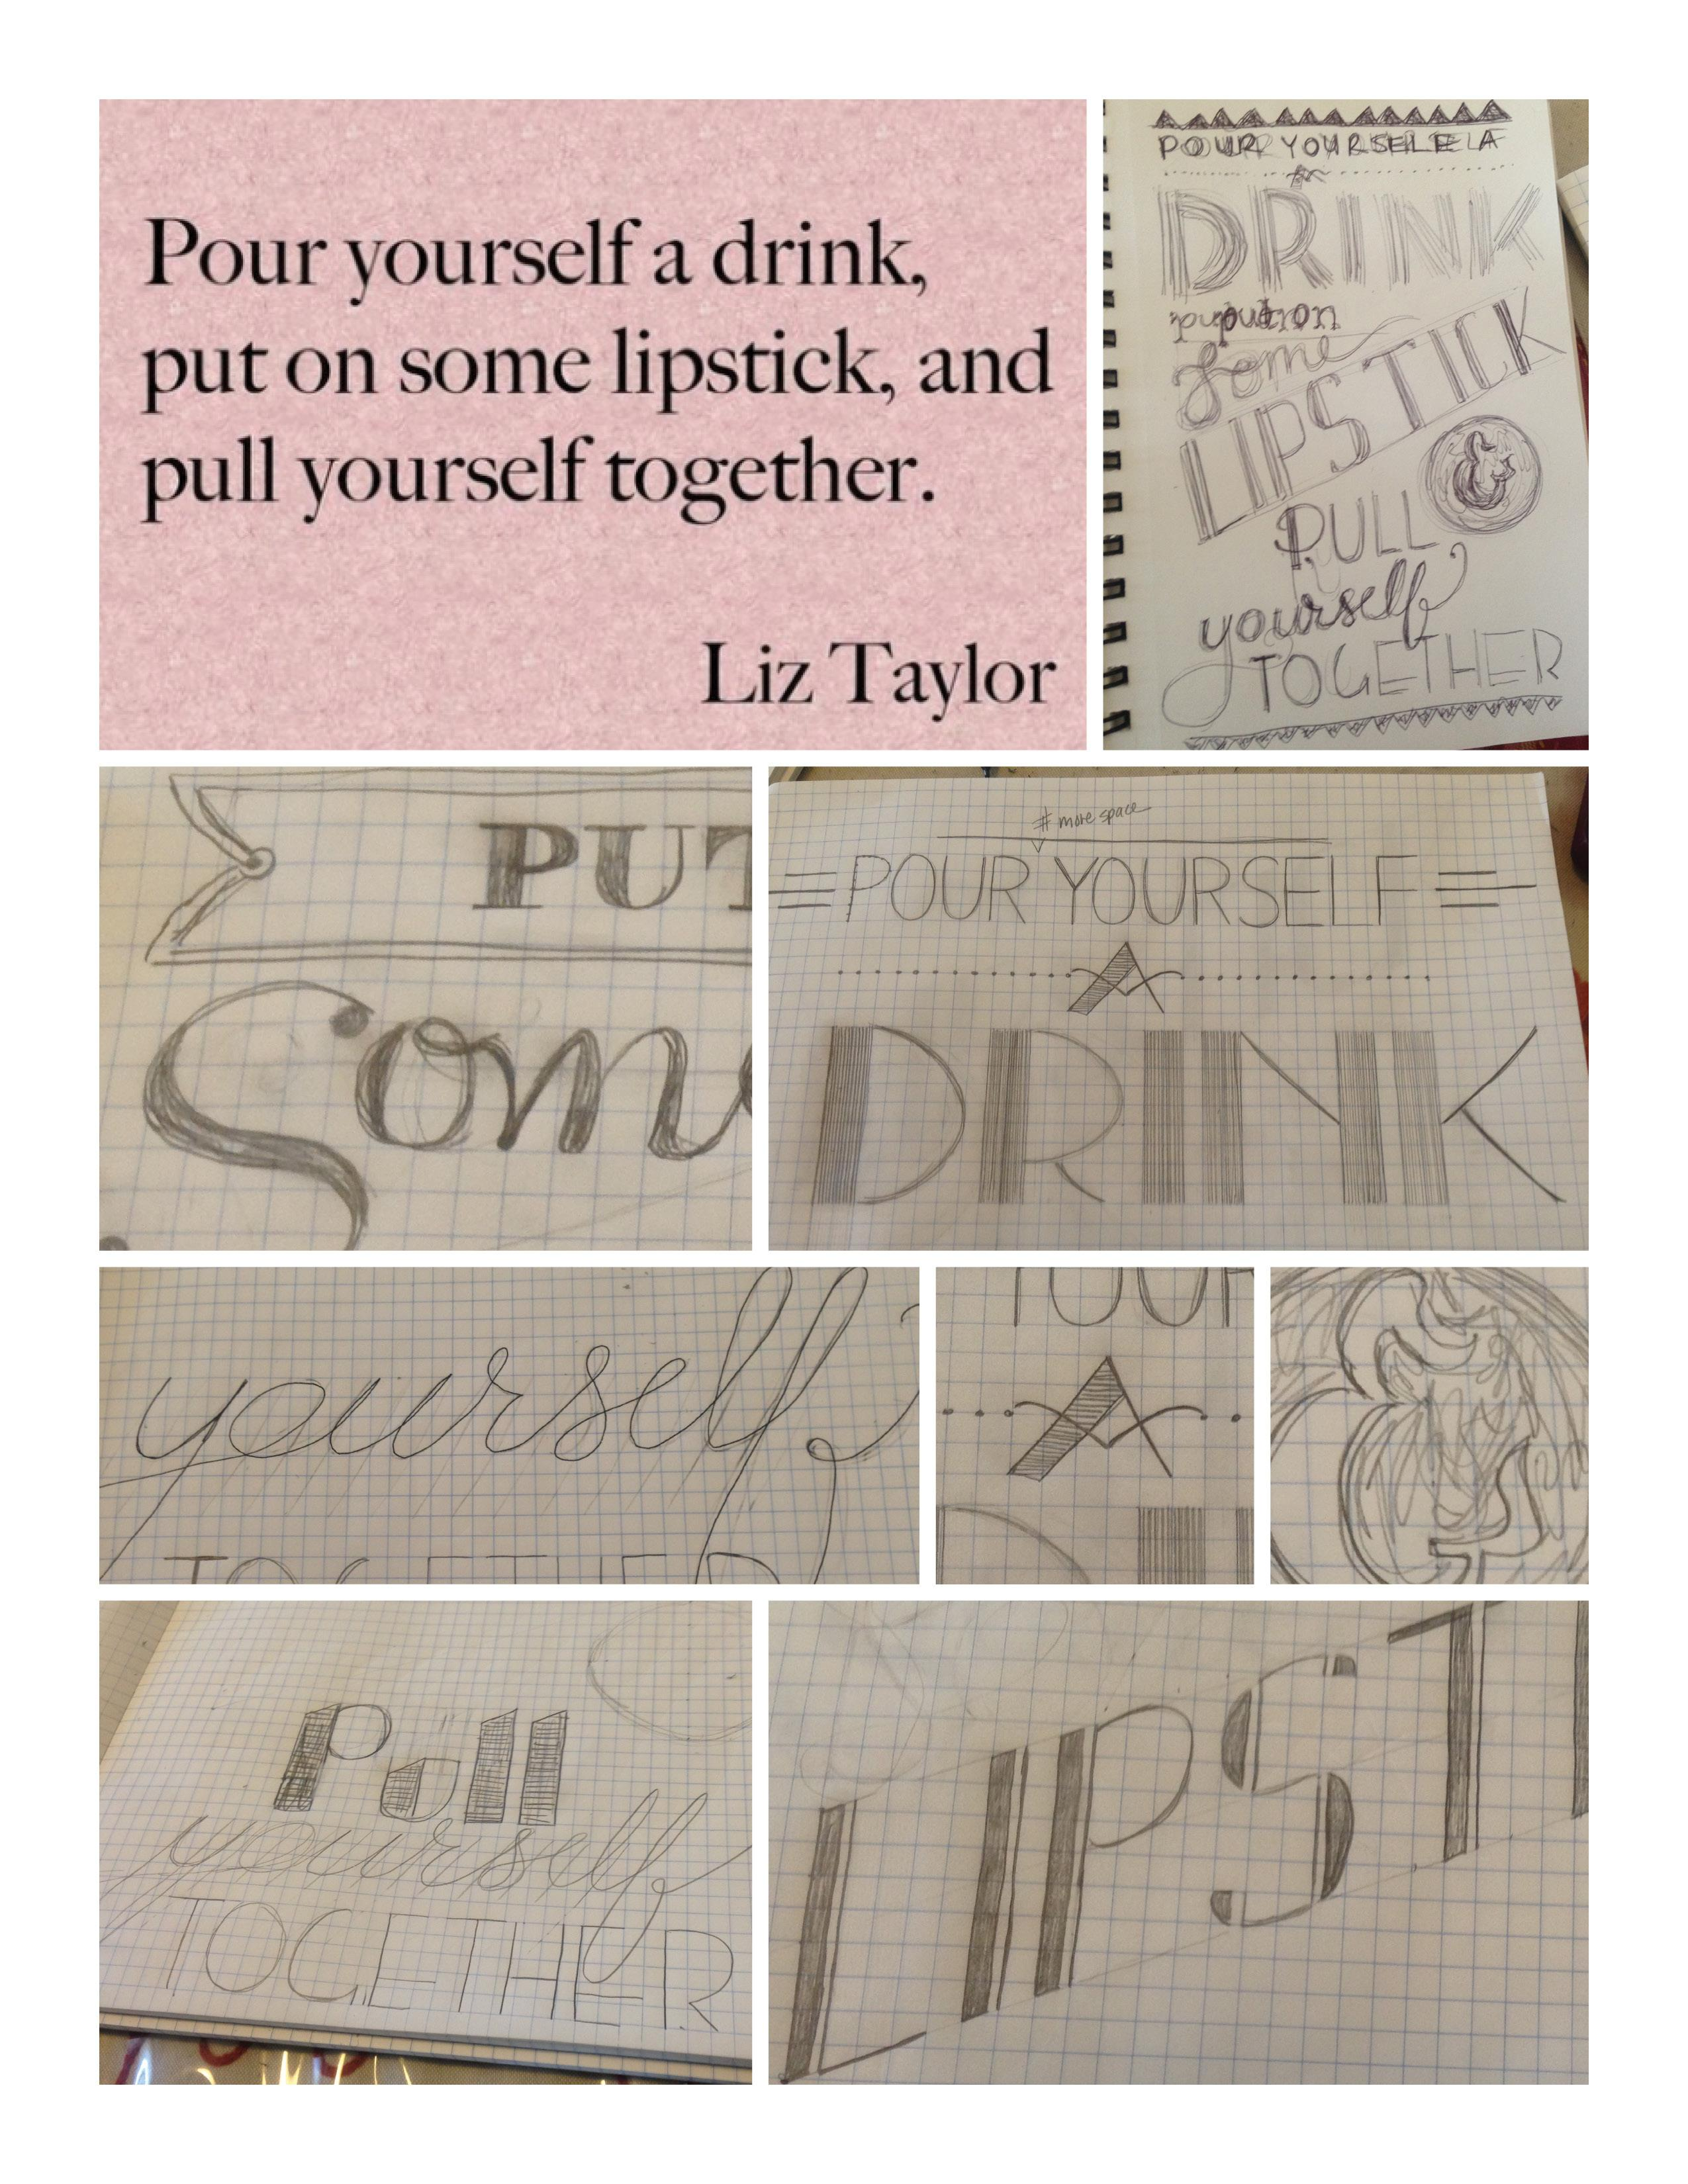 pour yourself a drink.  - image 6 - student project